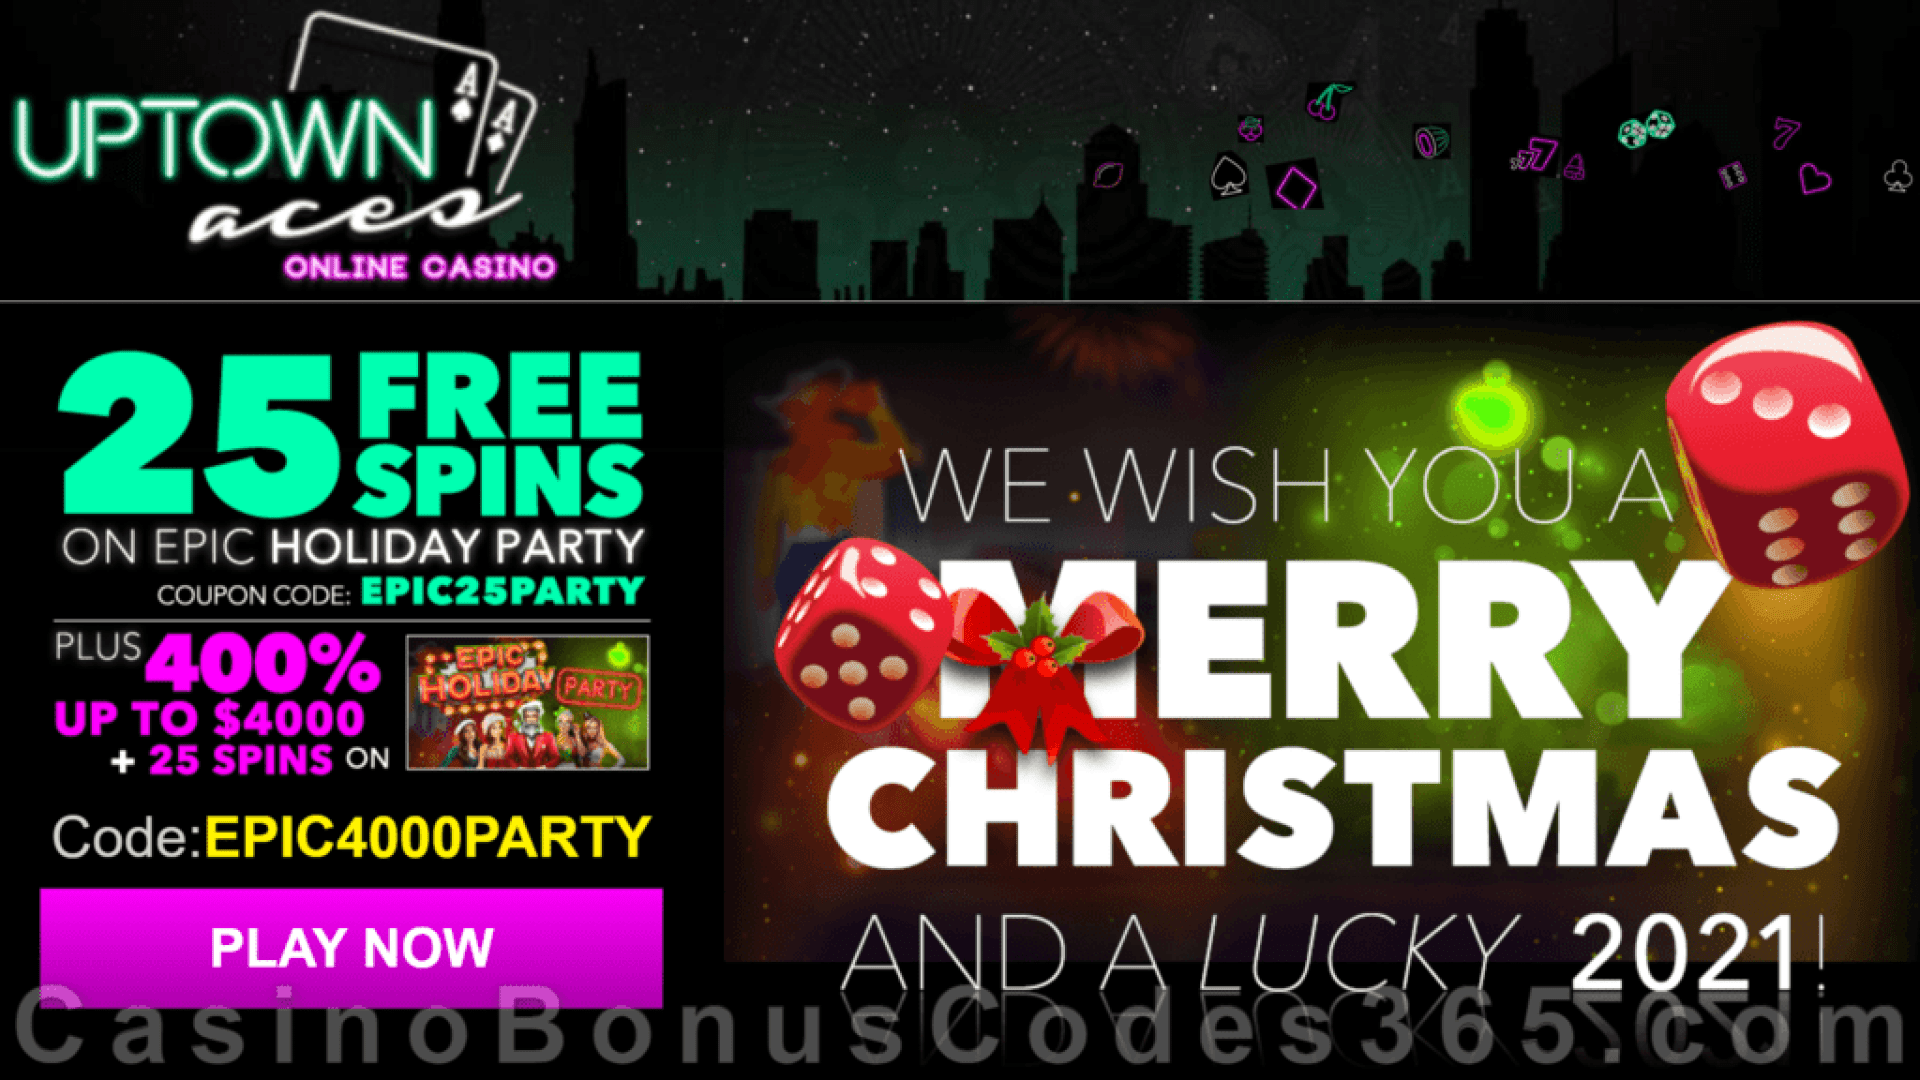 Uptown Aces 25 FREE Epic Holiday Party Spins and 400% Match Bonus plus 25 FREE Spins RTG Holiday Season Special Deal